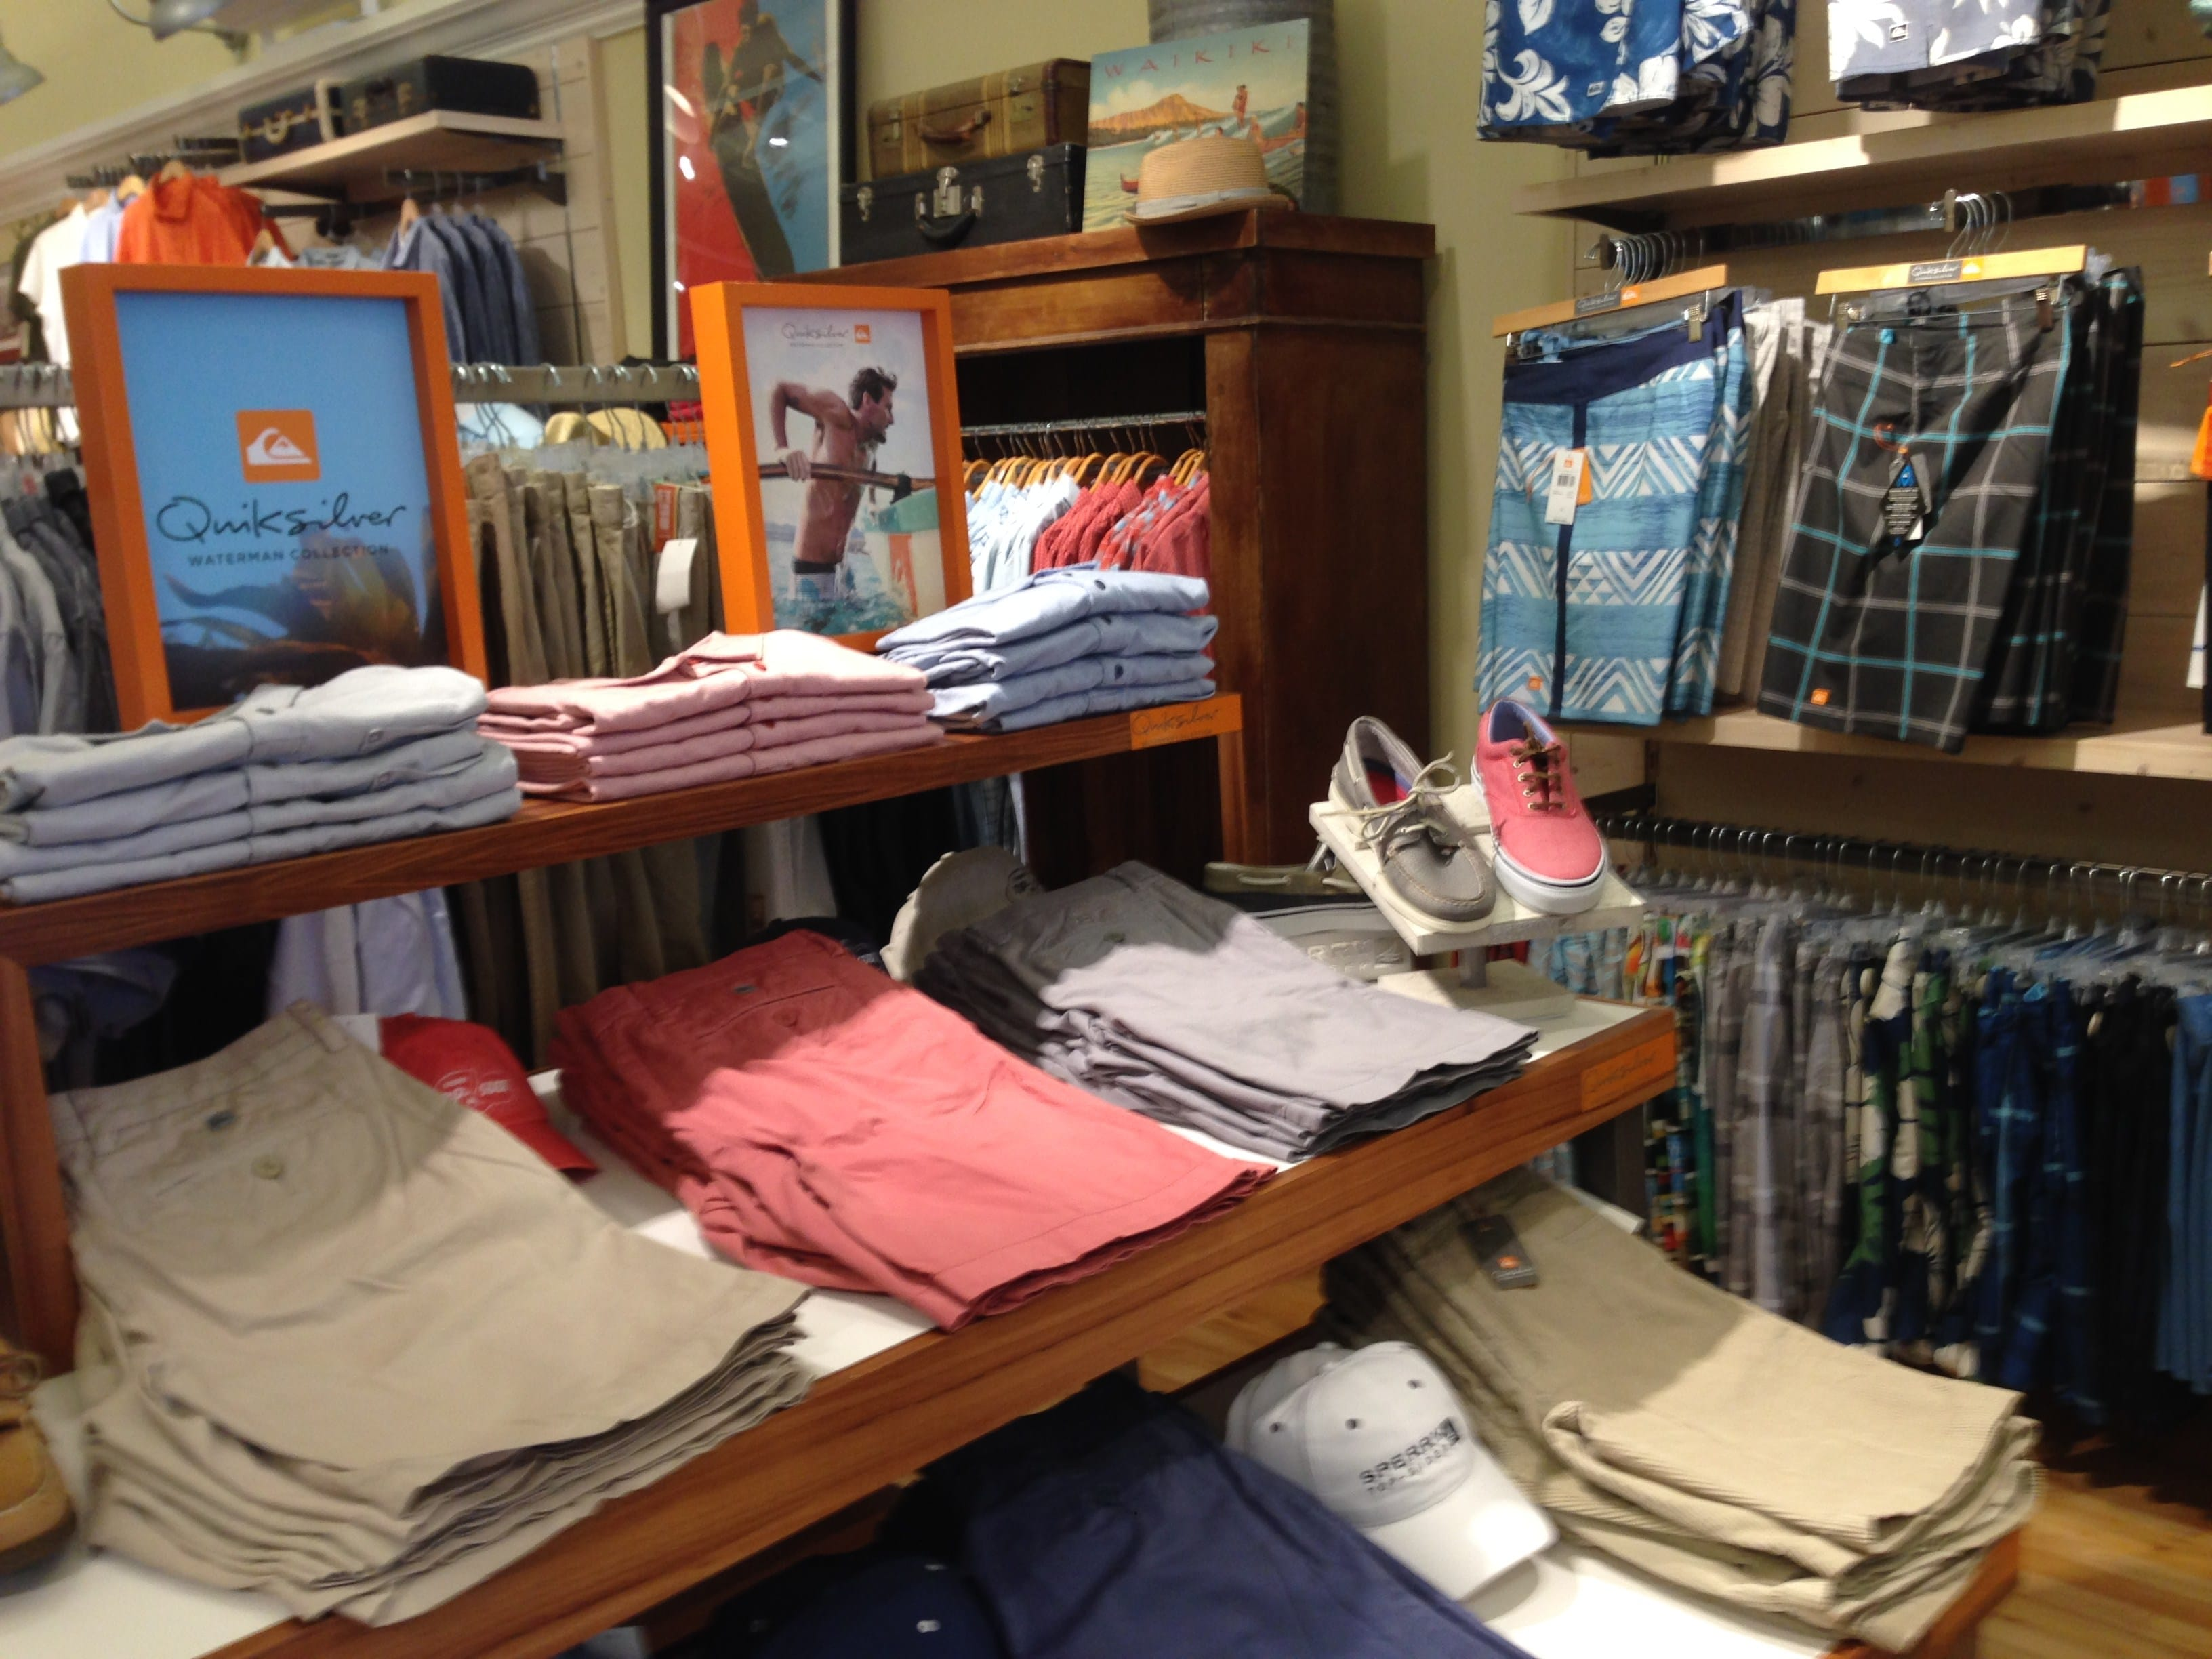 Gliks mens clothing stores in Holland michigan